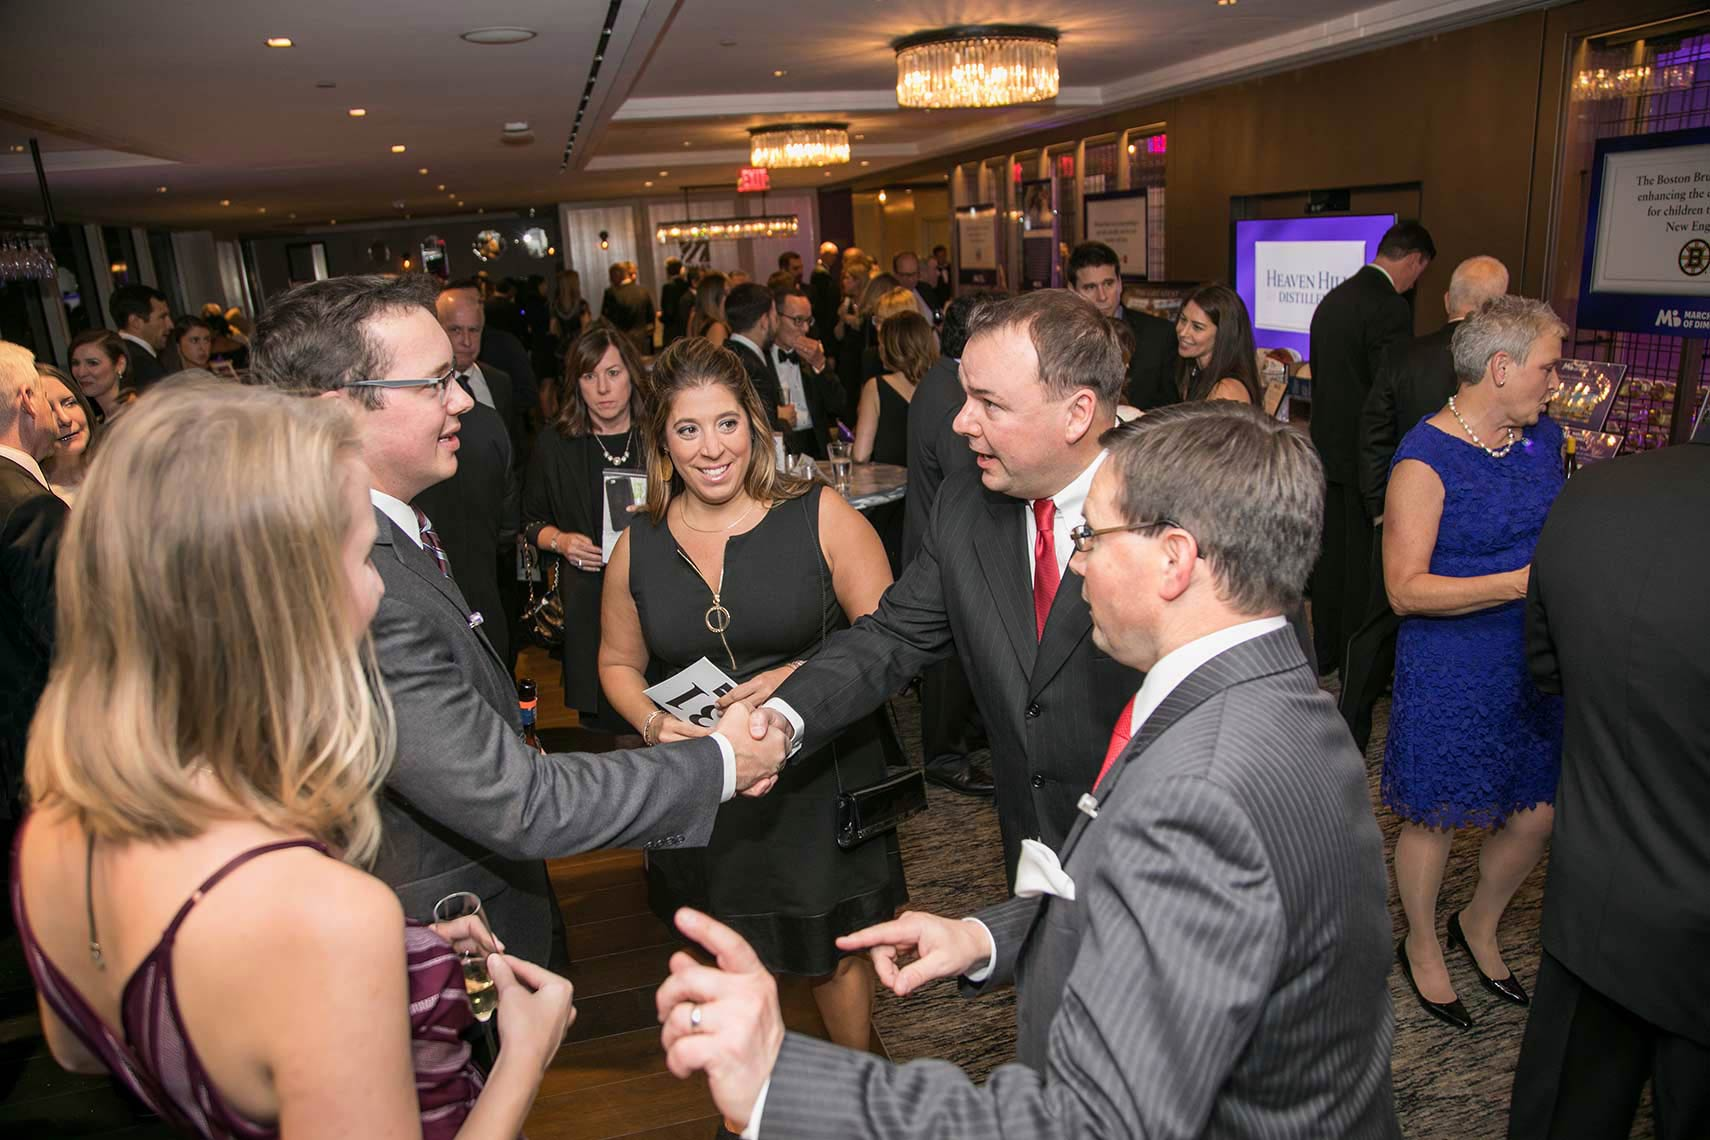 013-Guests-shake-hands-during-the-social-hour-at-the-Black-Ties-for-Babies-fundraiser-for-the-March-of-Dimes